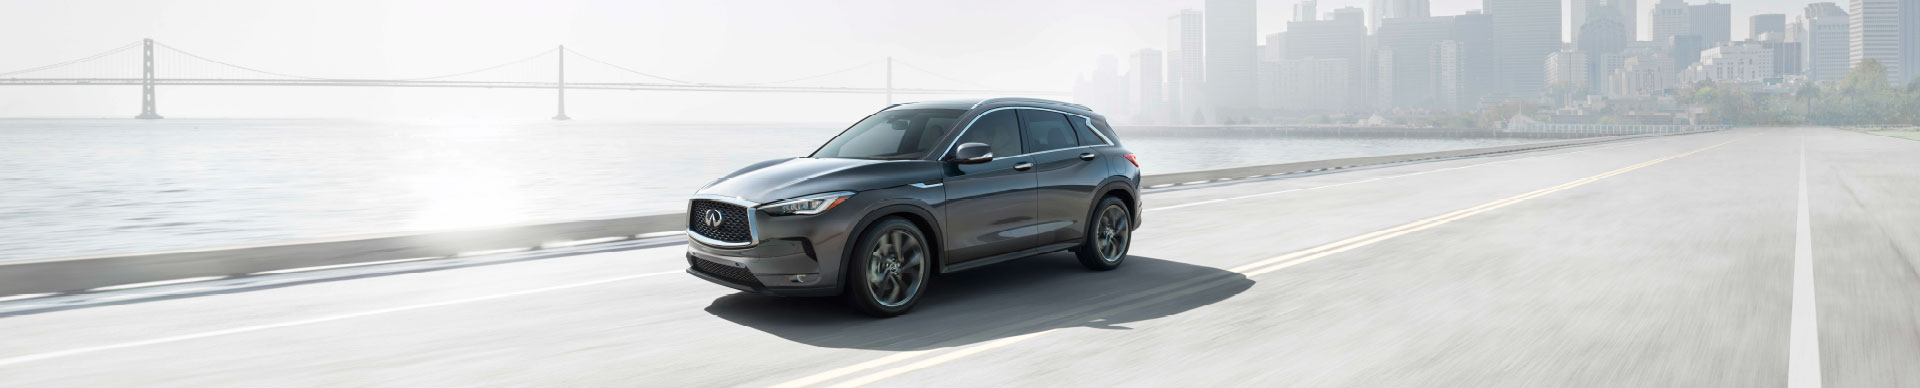 Reserve All-New QX50